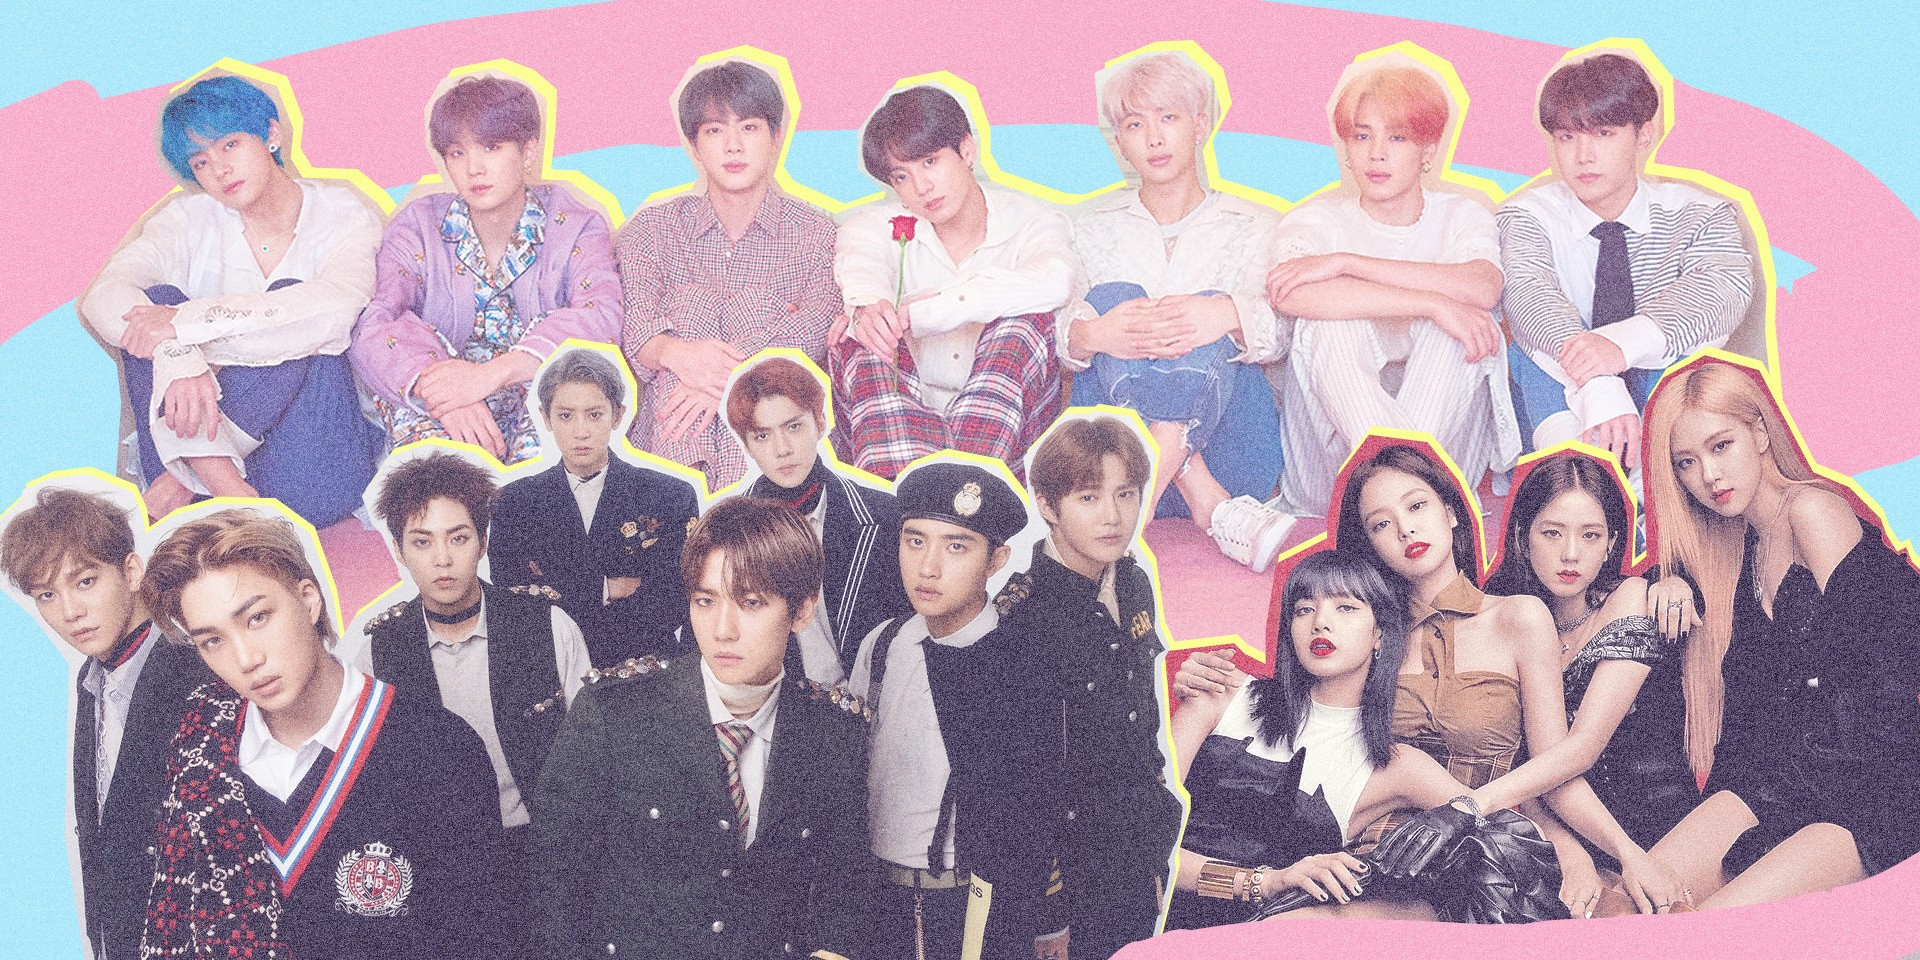 BTS, EXO, and BLACKPINK are the Philippines' top tweeted K-Pop acts in 2019